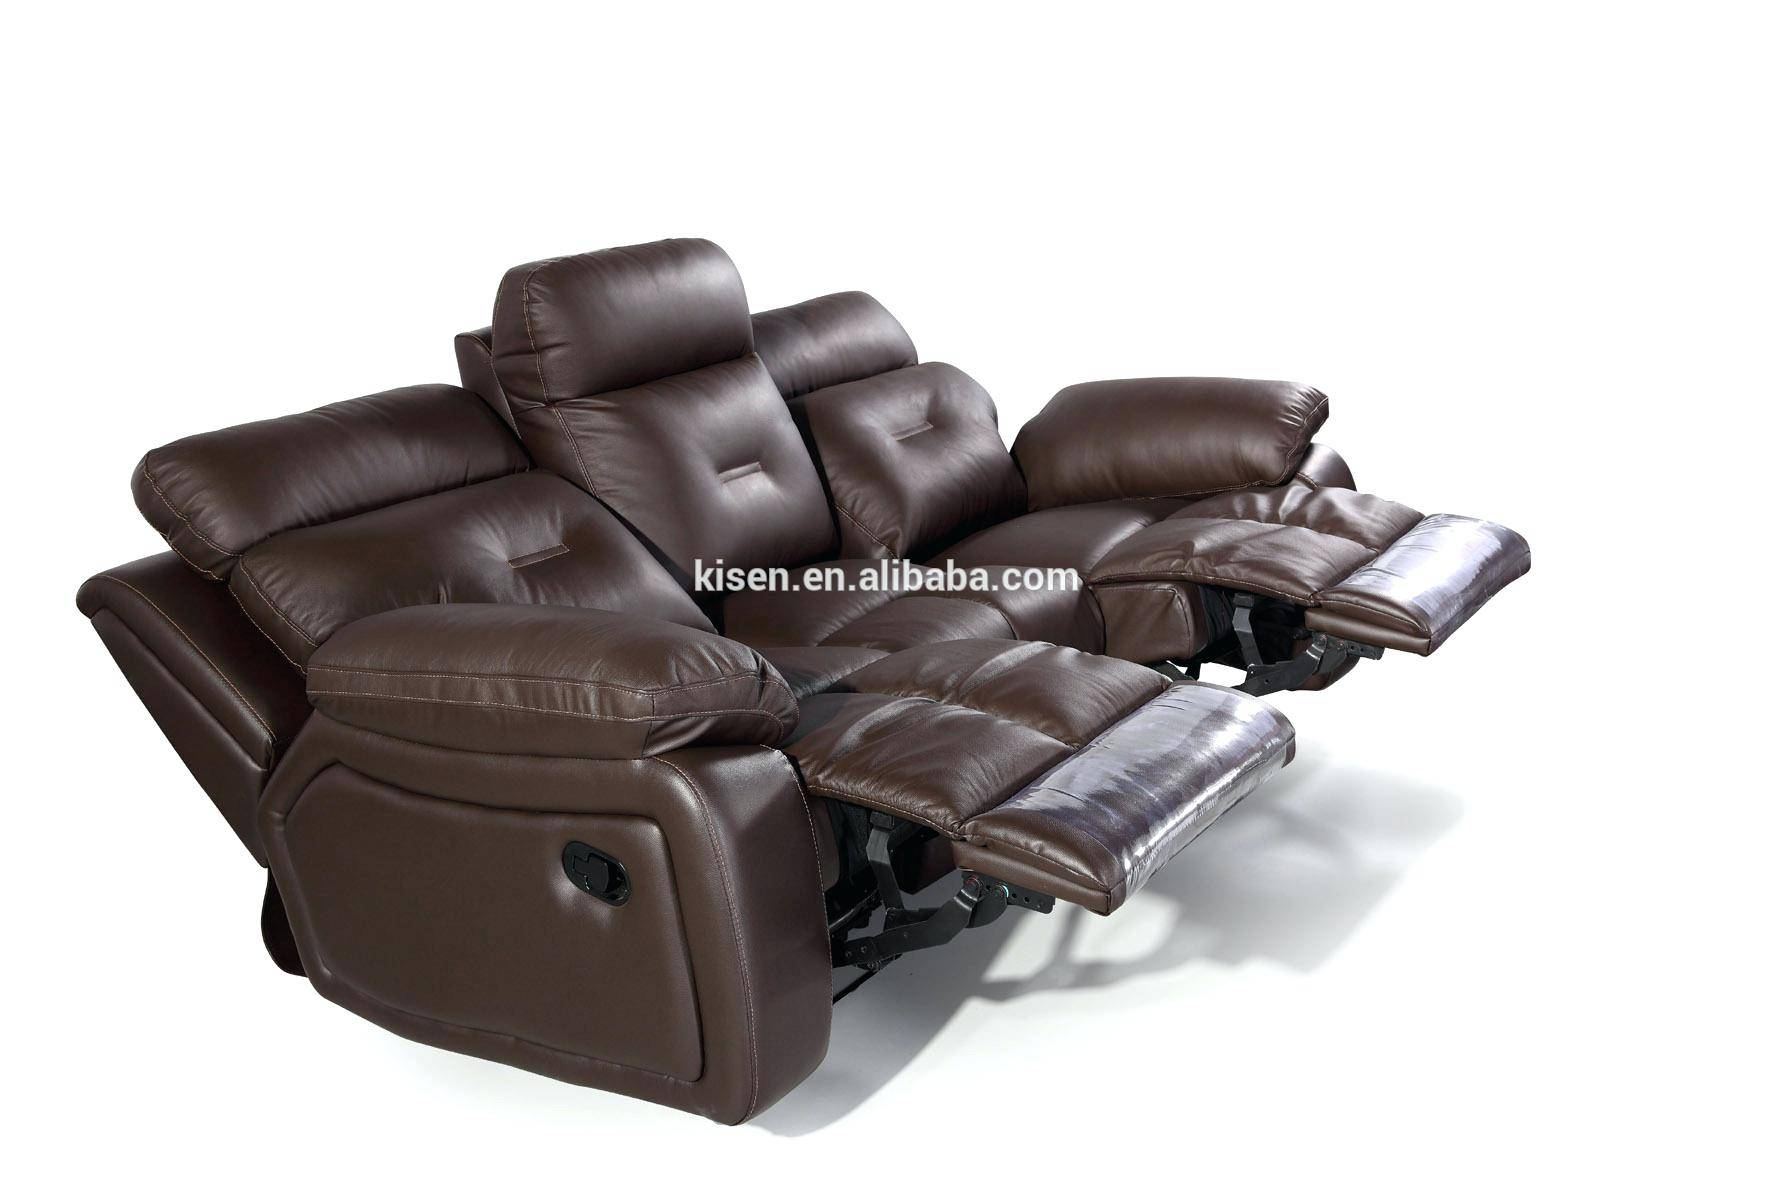 Recliners: Mesmerizing Berkline Leather Recliner For Home pertaining to Berkline Recliner Sofas (Image 8 of 15)